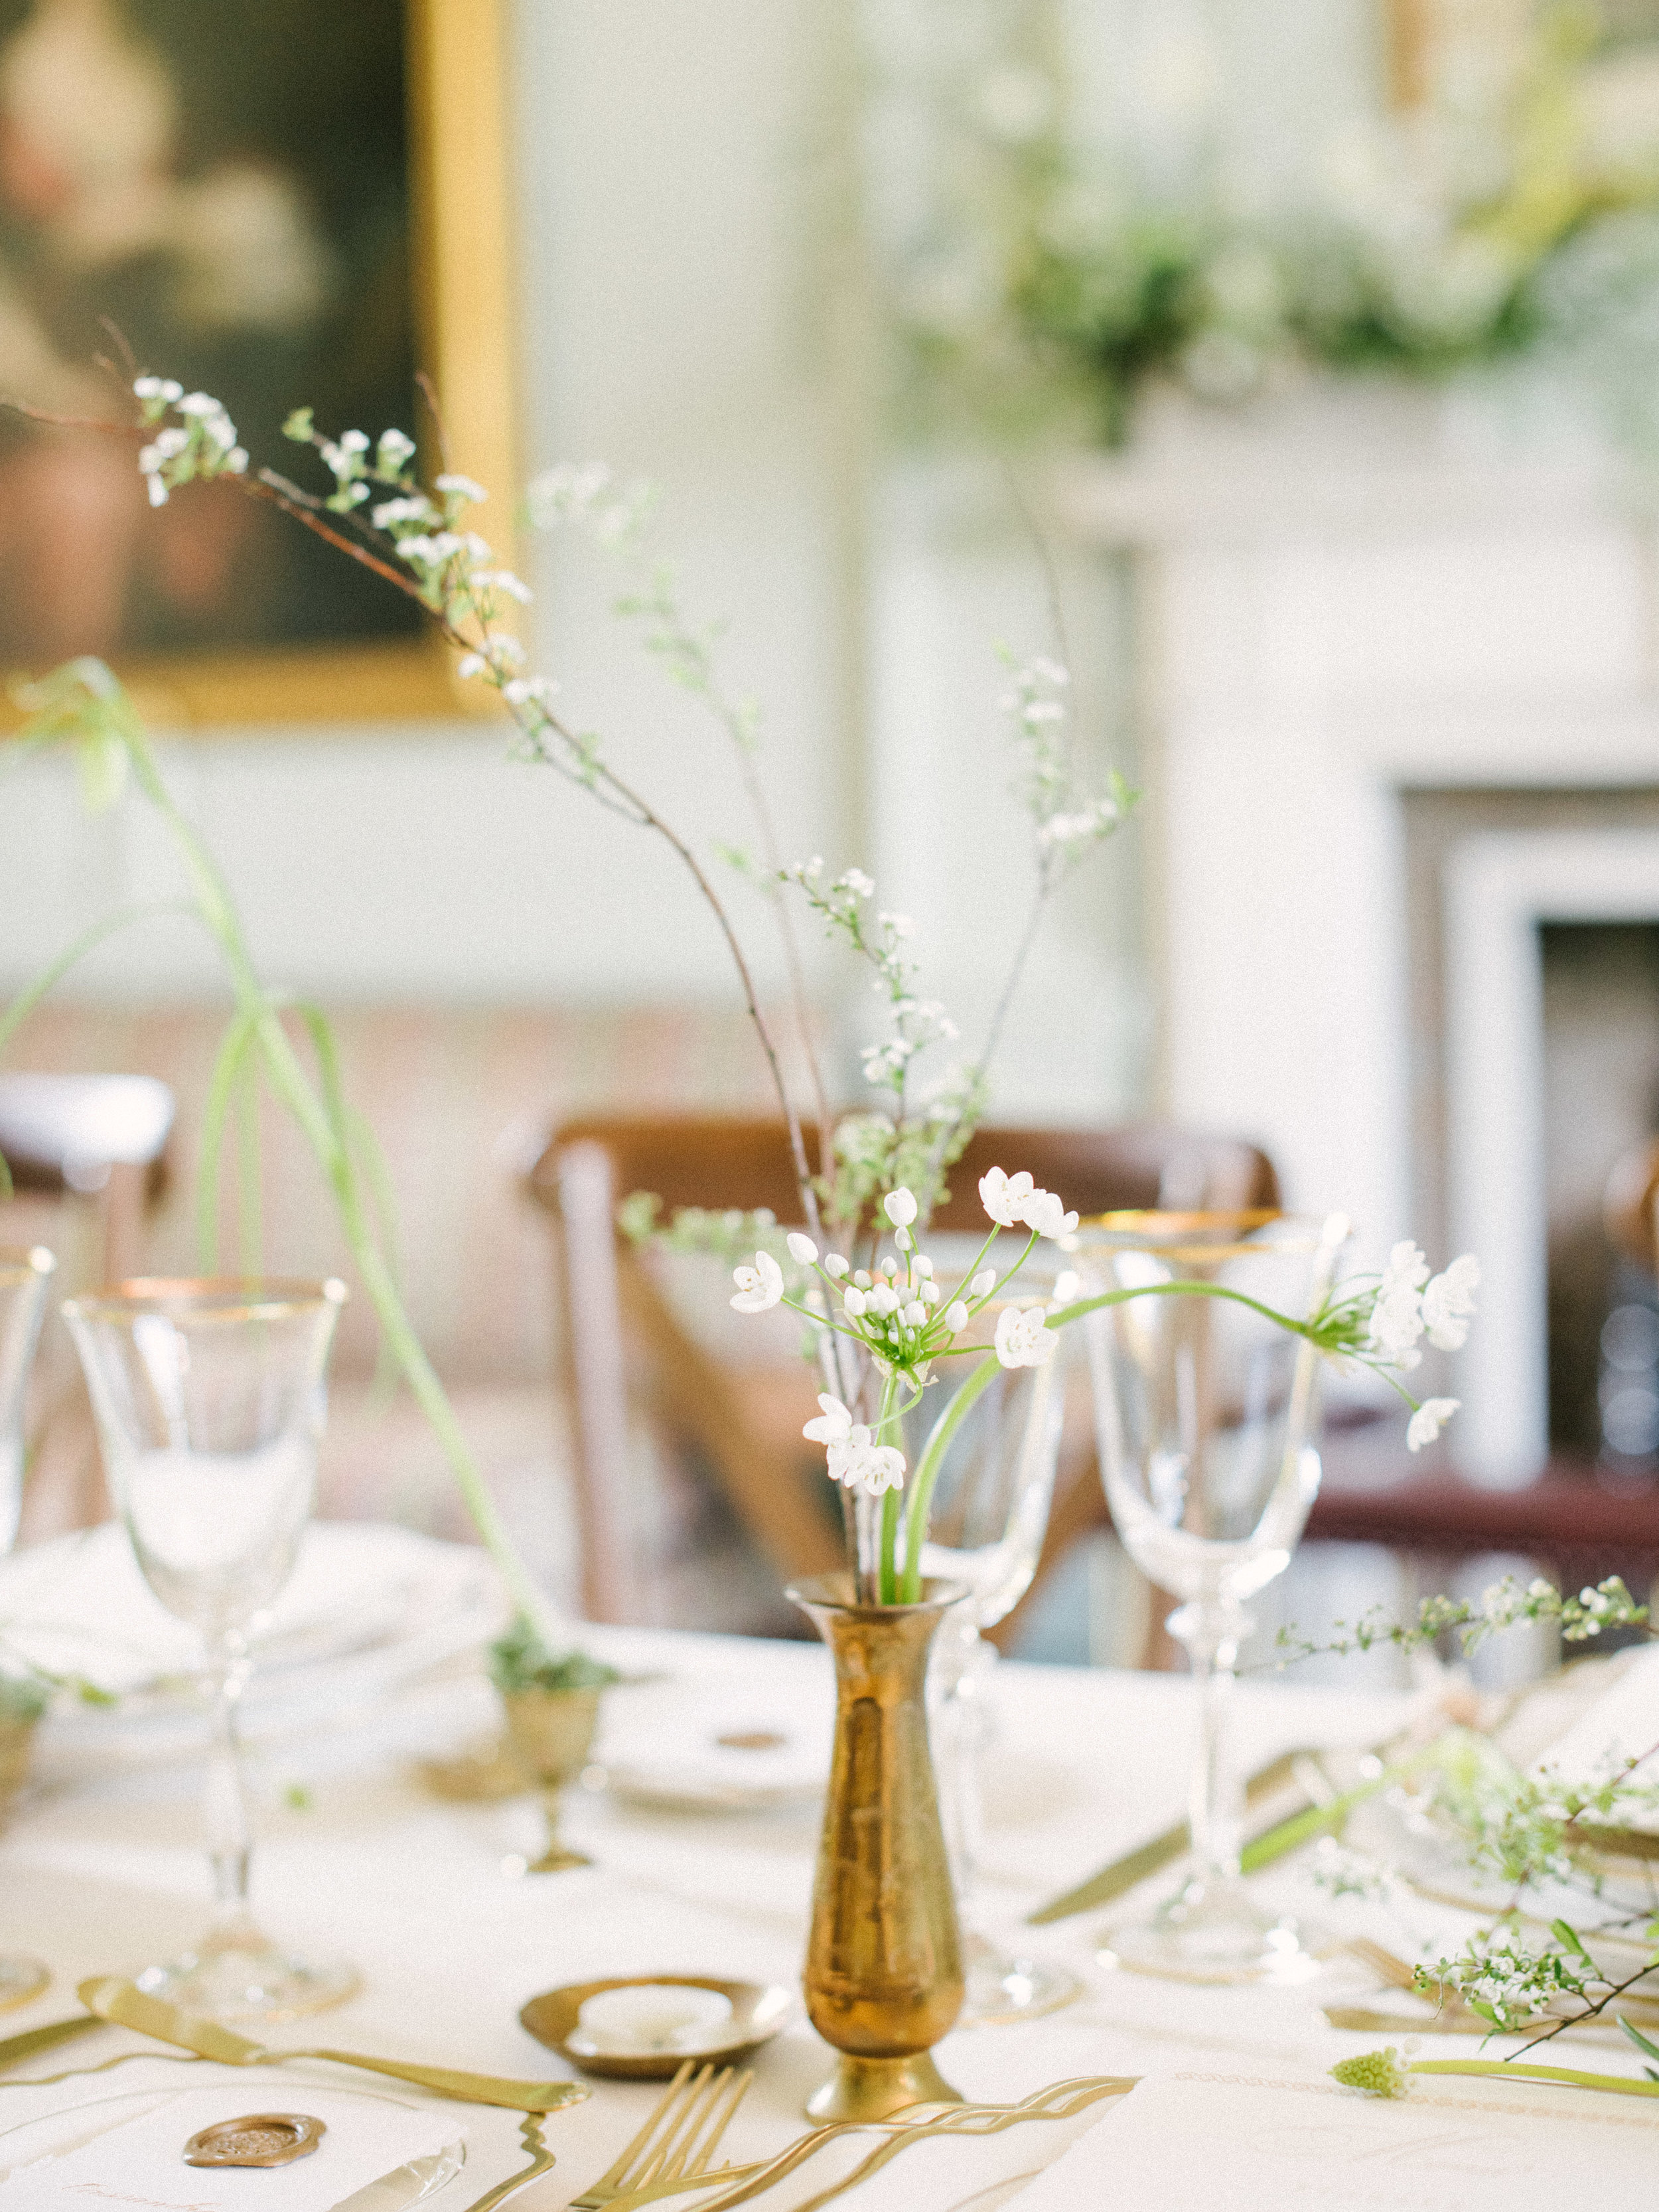 The Timeless Stylist-Brass Vase-Spring Table Styling